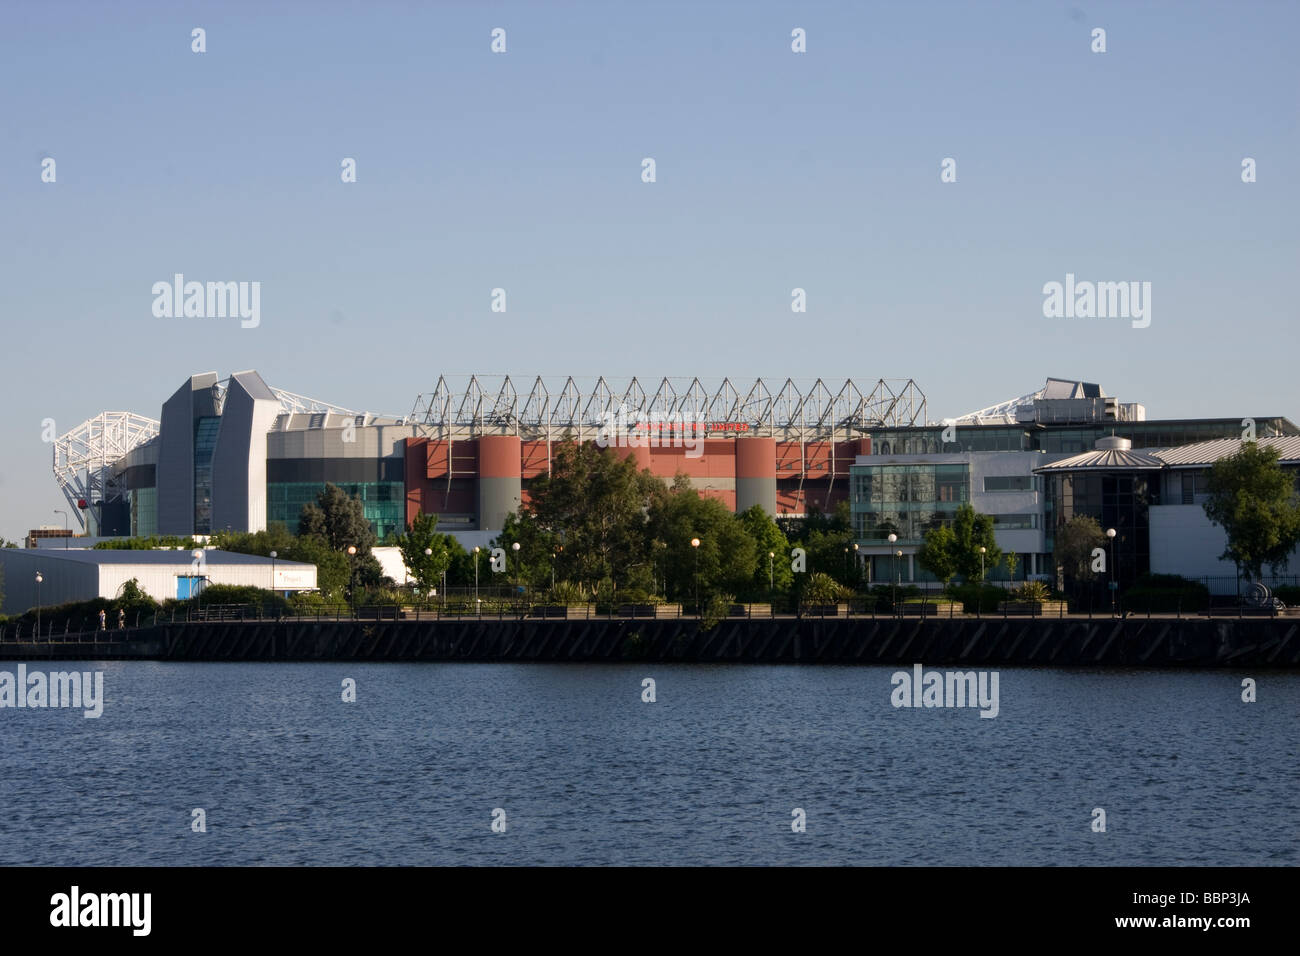 manchester united football ground - Stock Image